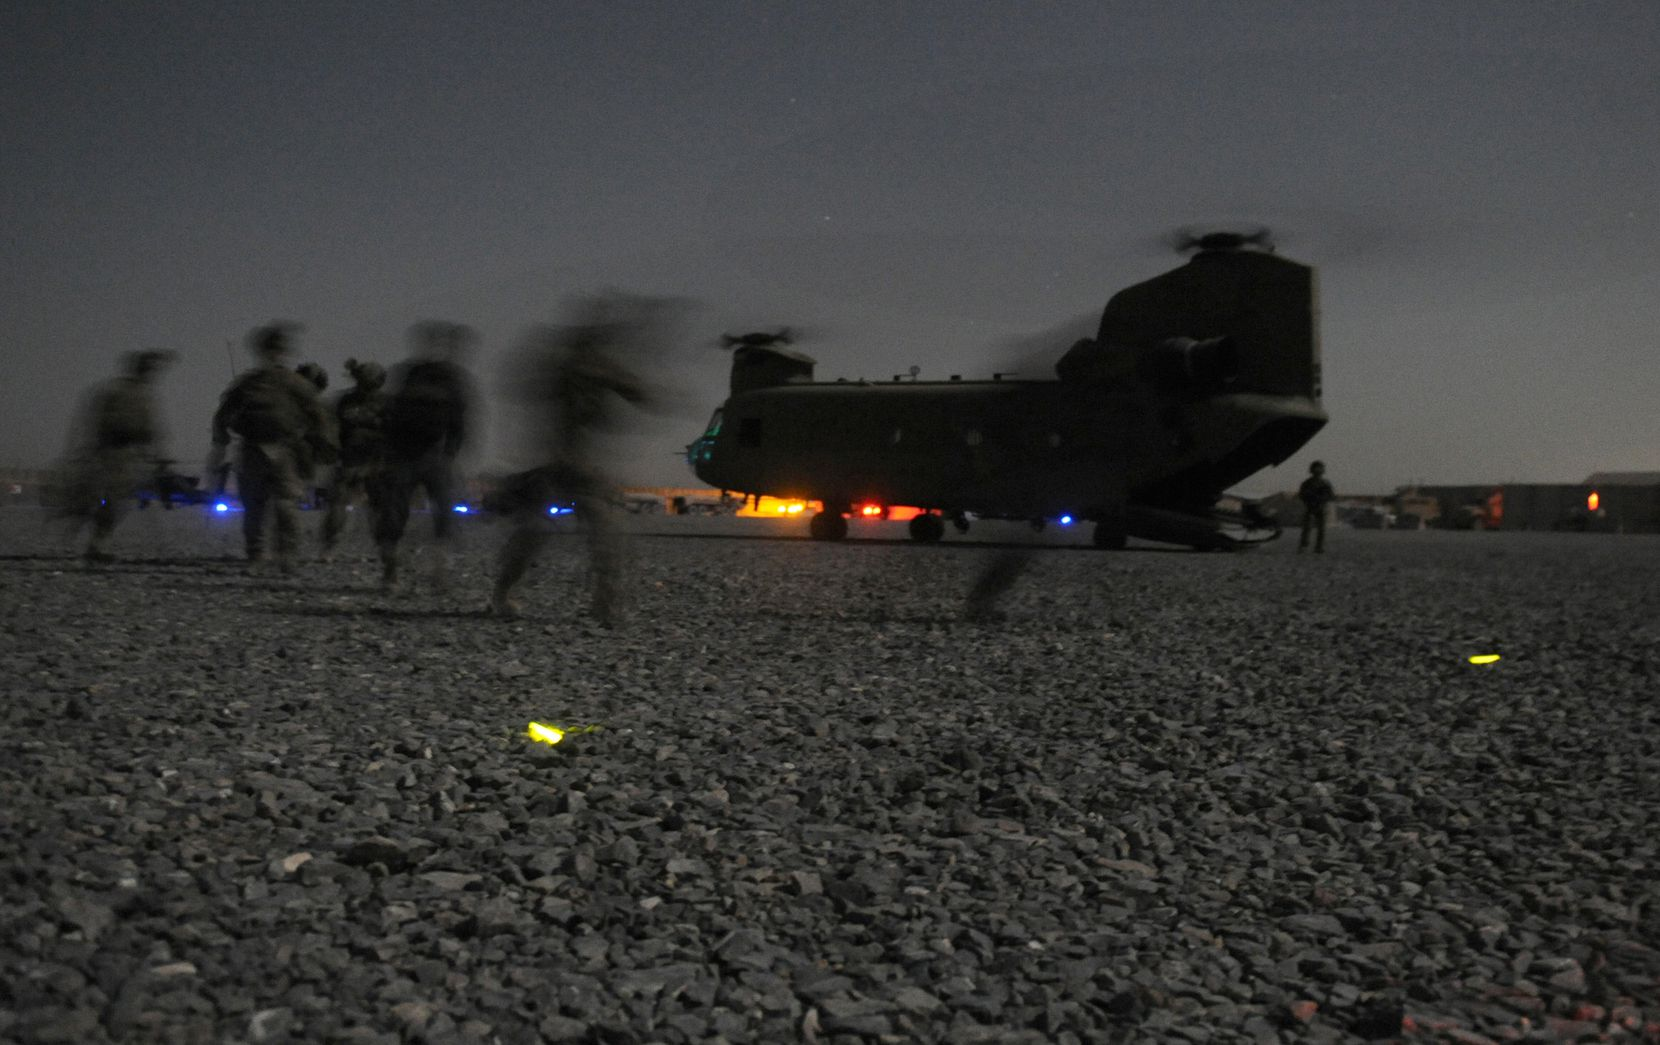 U.S. soldiers from Bravo Company, 2-87 Infantry Battalion, 3rd Brigade Combat Team and Afghan security forces conduct their final boarding maneuver before departing on a Chinook helicopter at Forward Operating Base Pasab in Zahri district, Kandahar province southern Afghanistan on August 15, 2011 to conduct a combined air and ground assault operation.